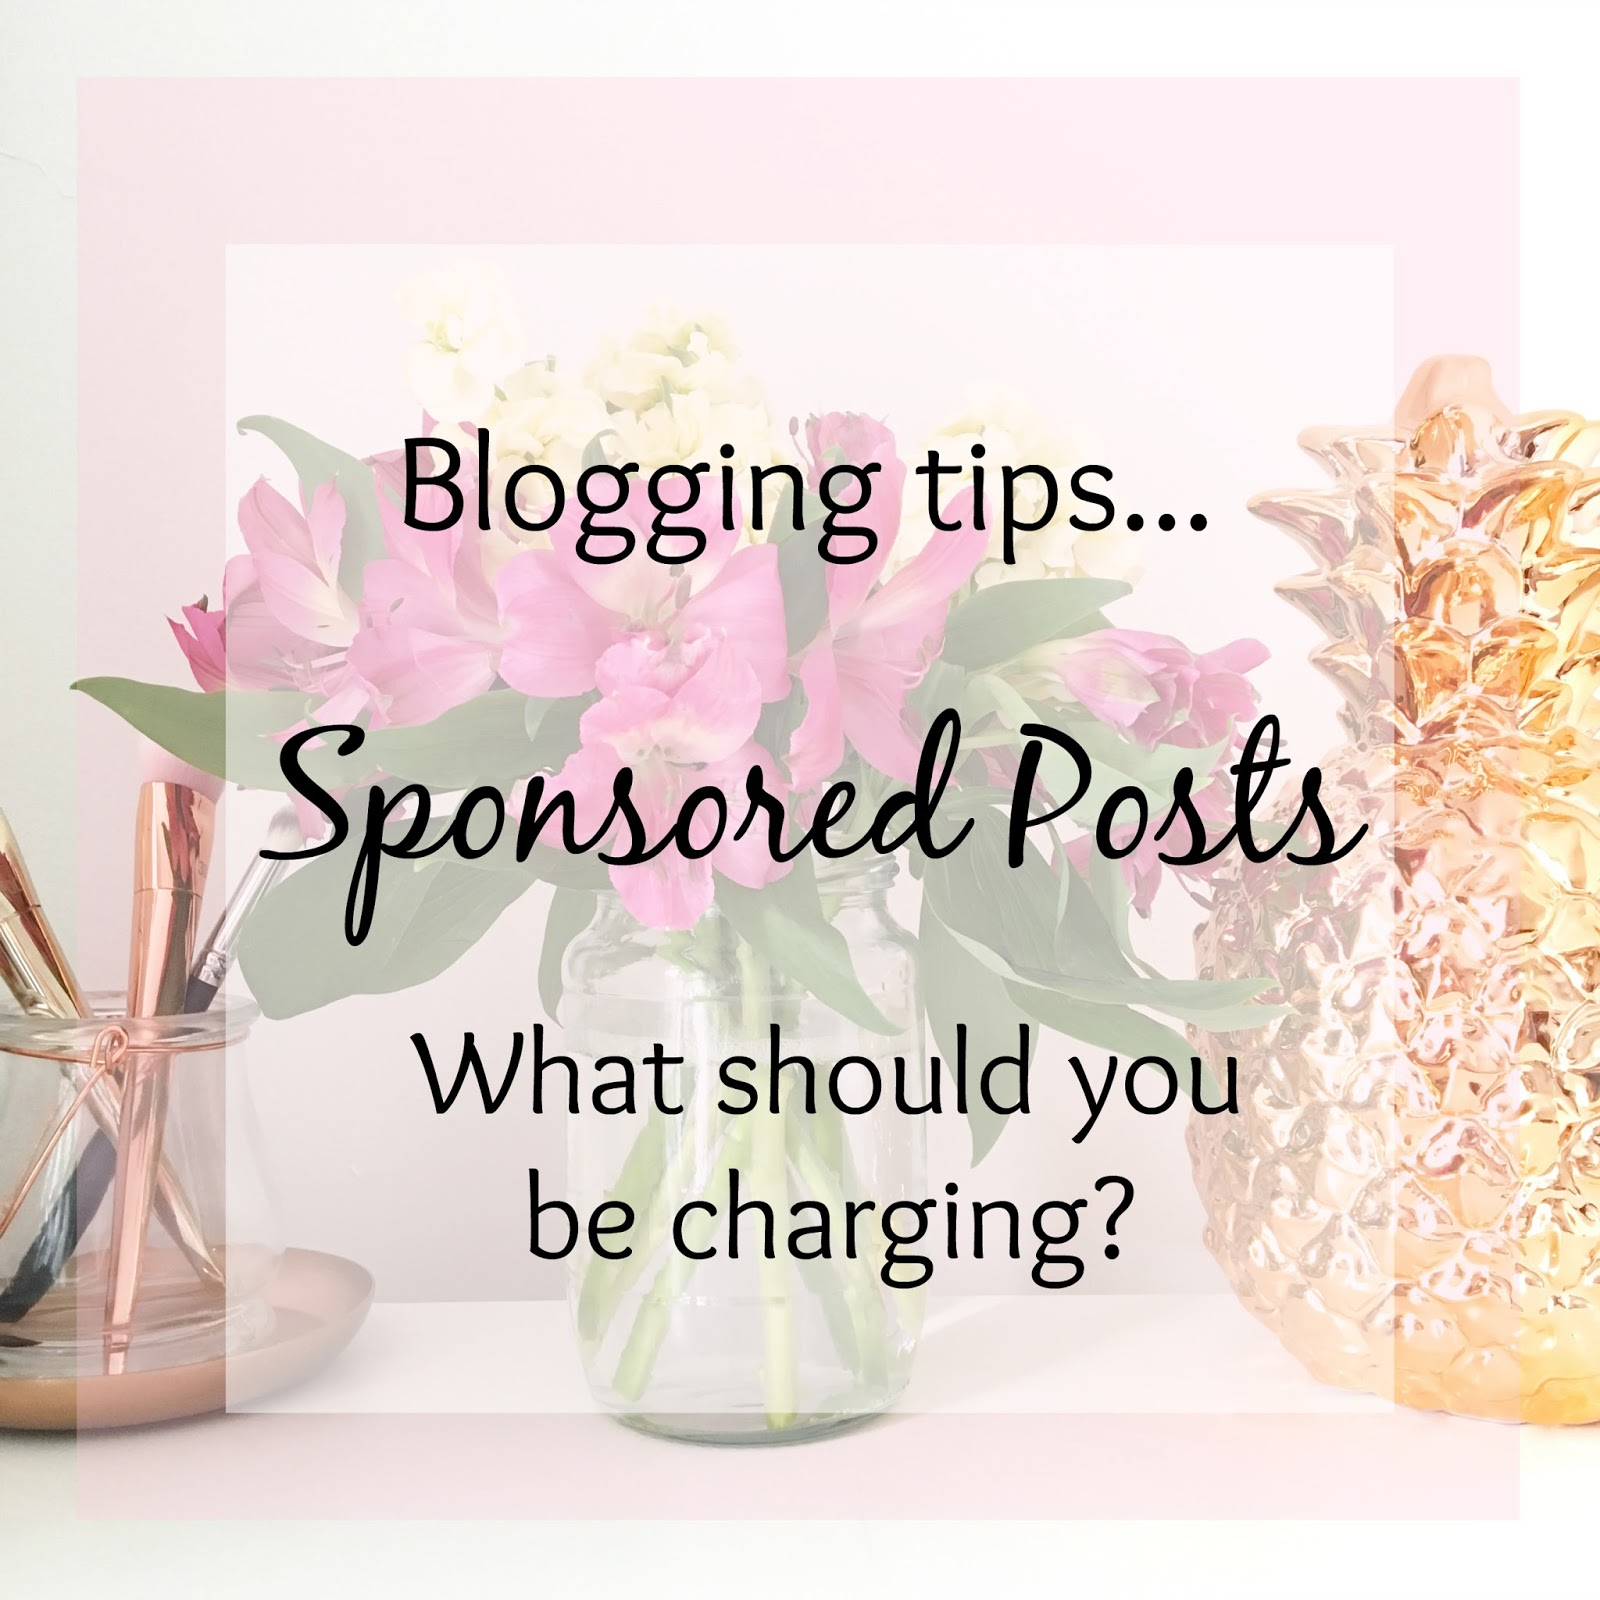 Blogging tips - what to charge for sponsored posts